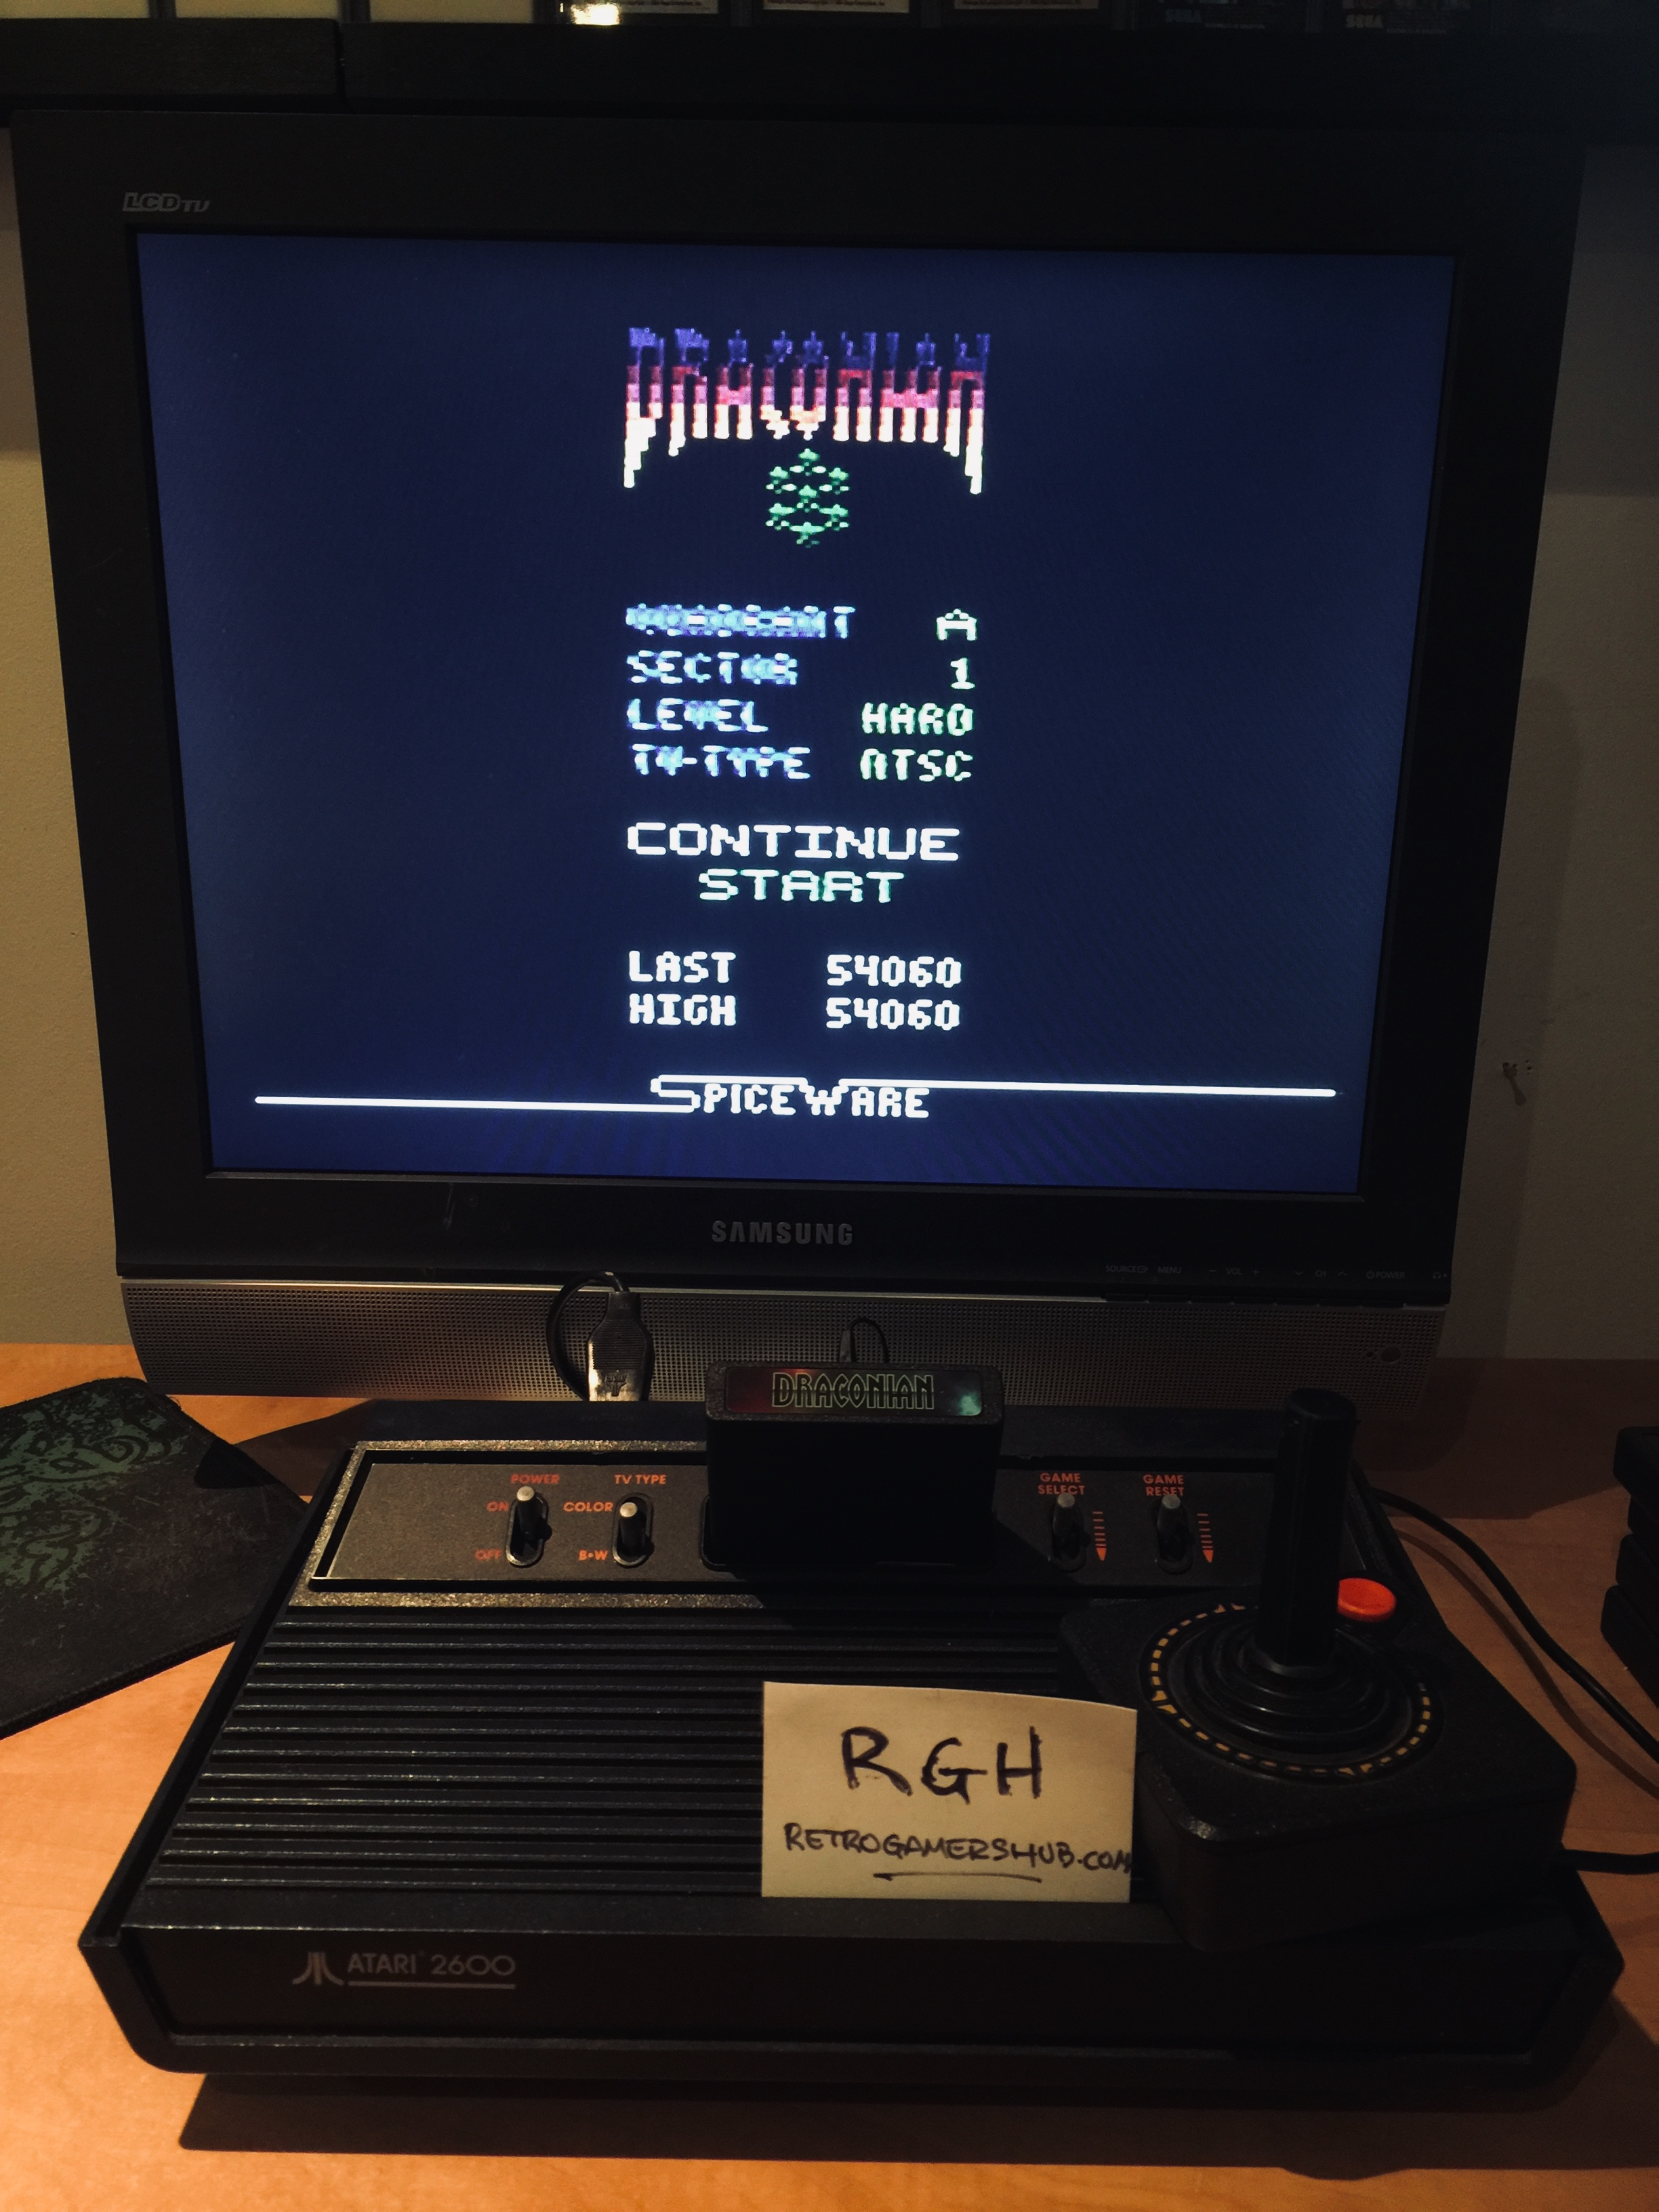 RetroGamersHub: Draconian: Quadrant Alpha / Sector 1 [Hard] (Atari 2600) 54,060 points on 2019-05-15 16:37:16